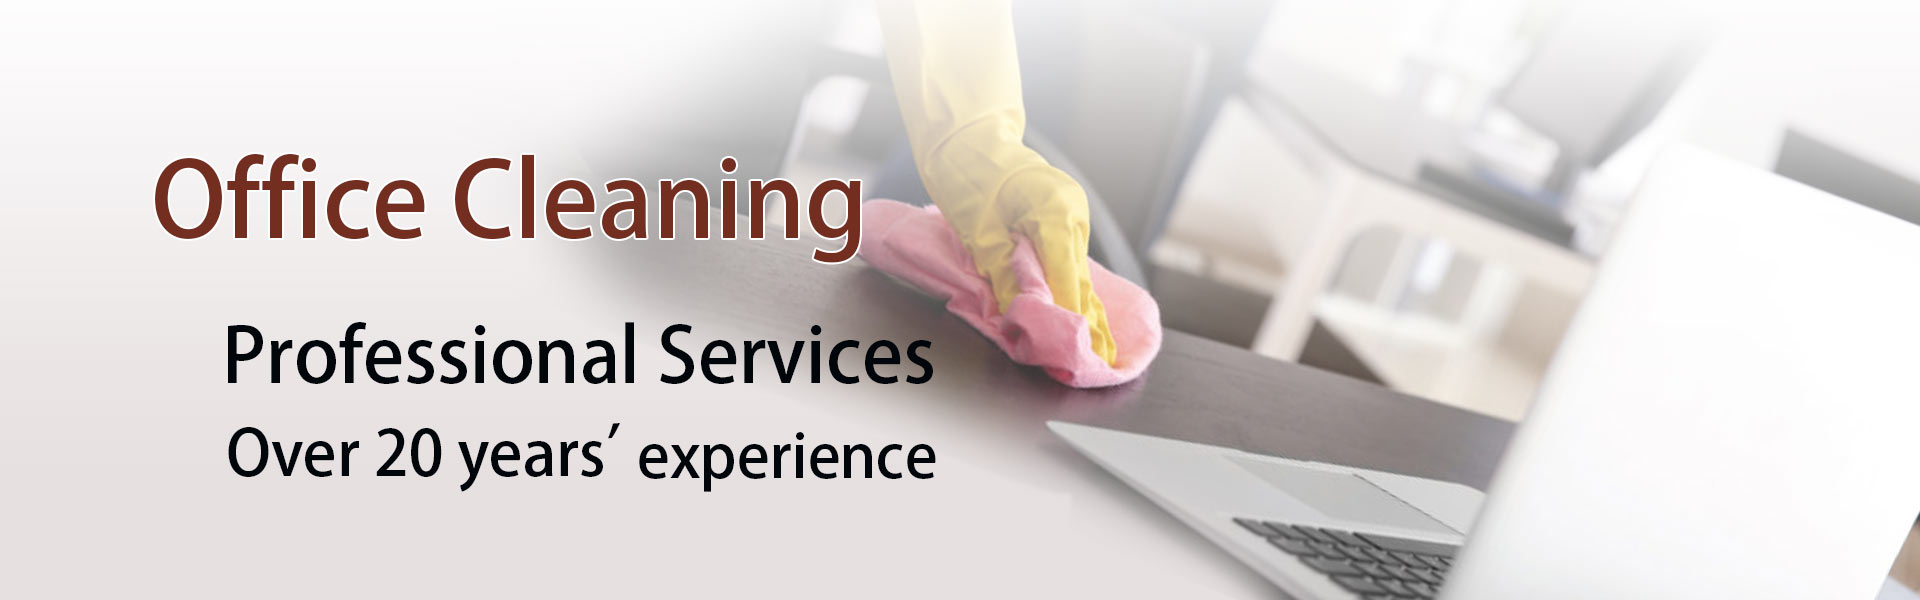 Office Cleaning Service NY